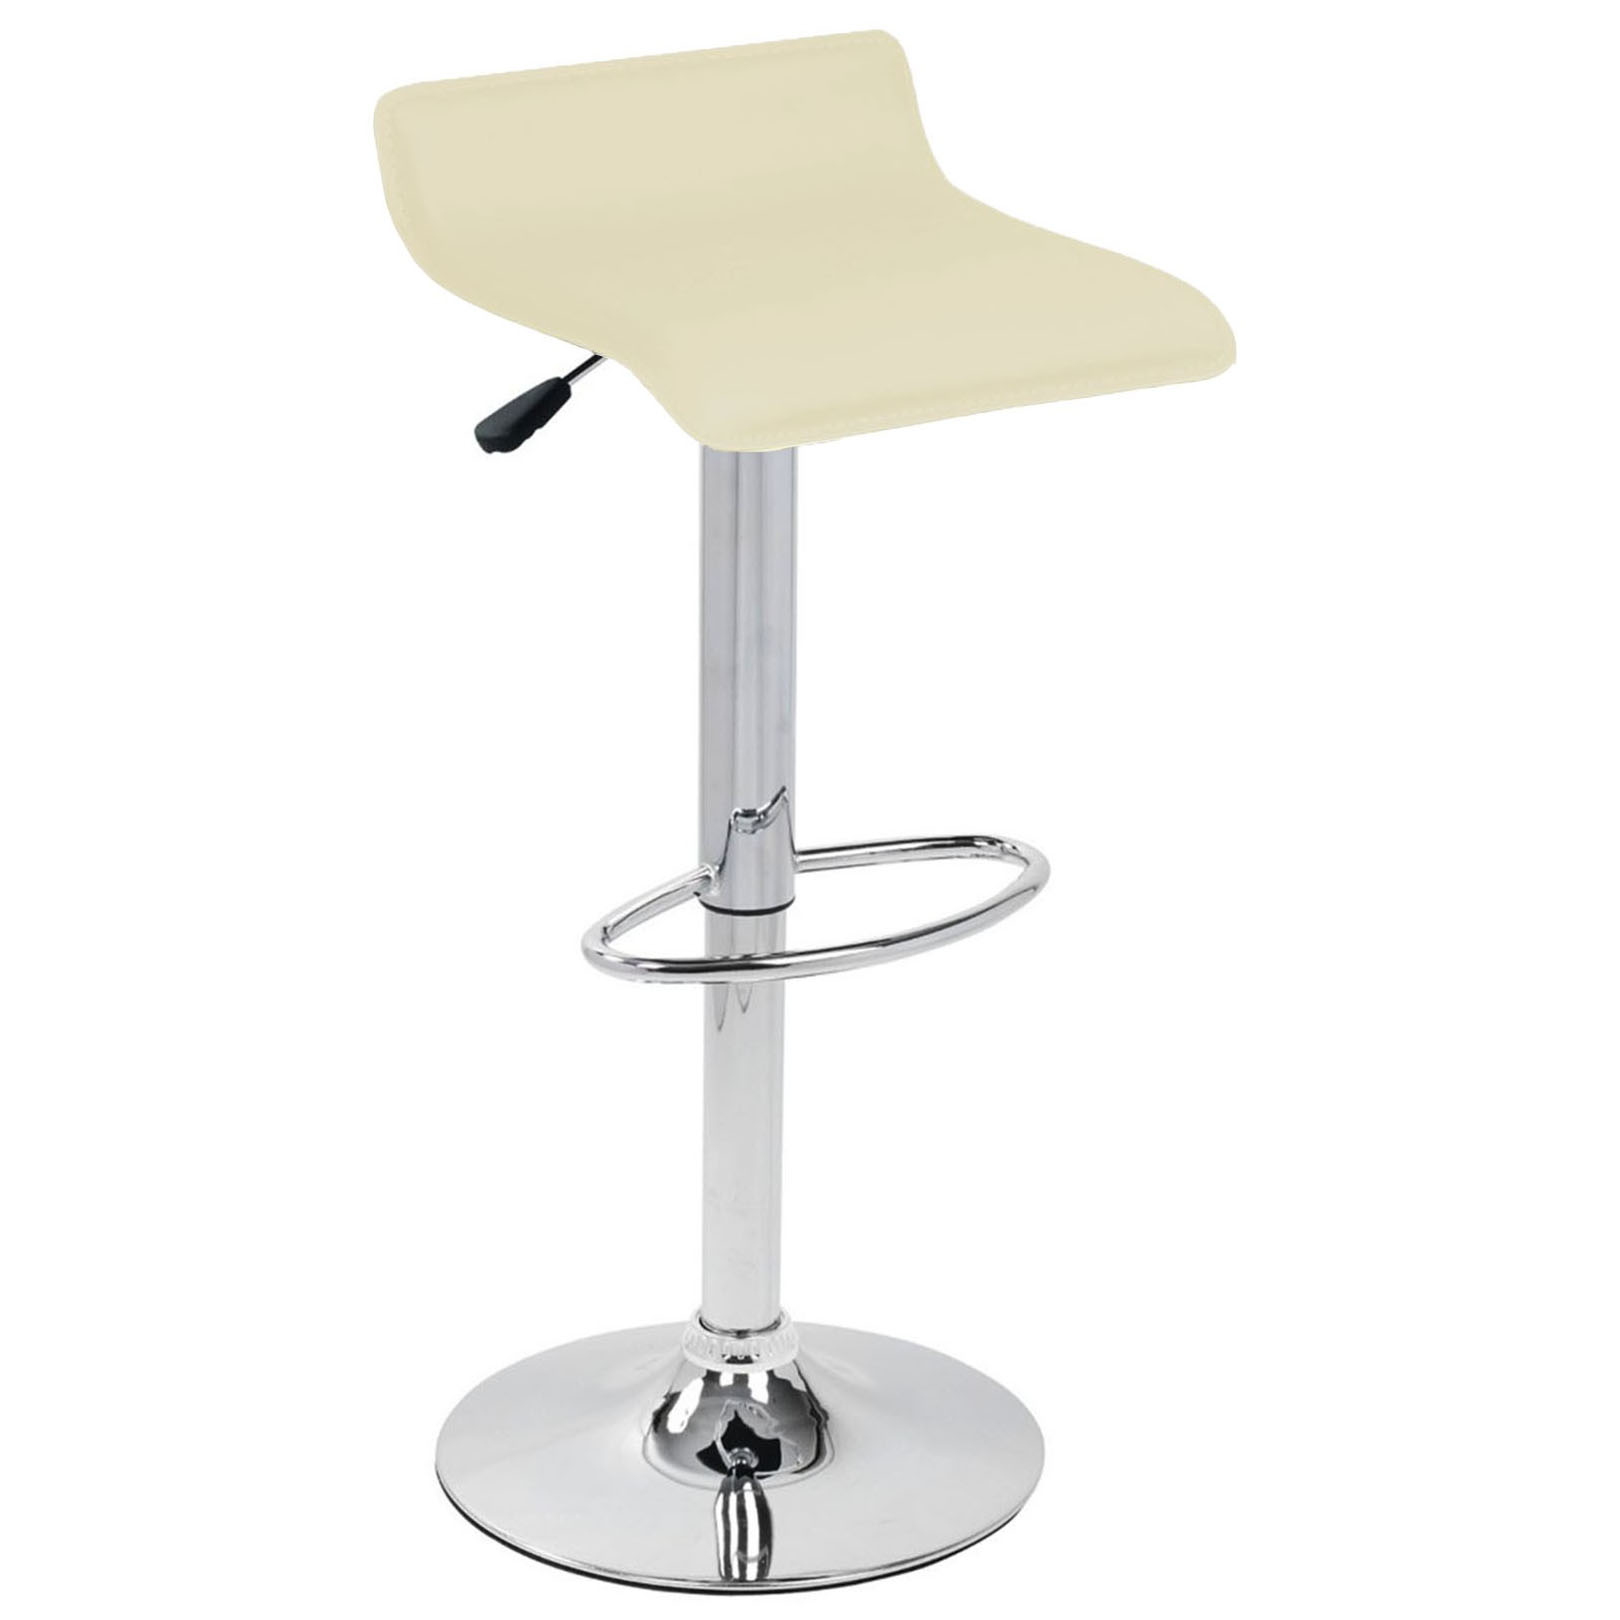 Baceno Bar Stool - Cream